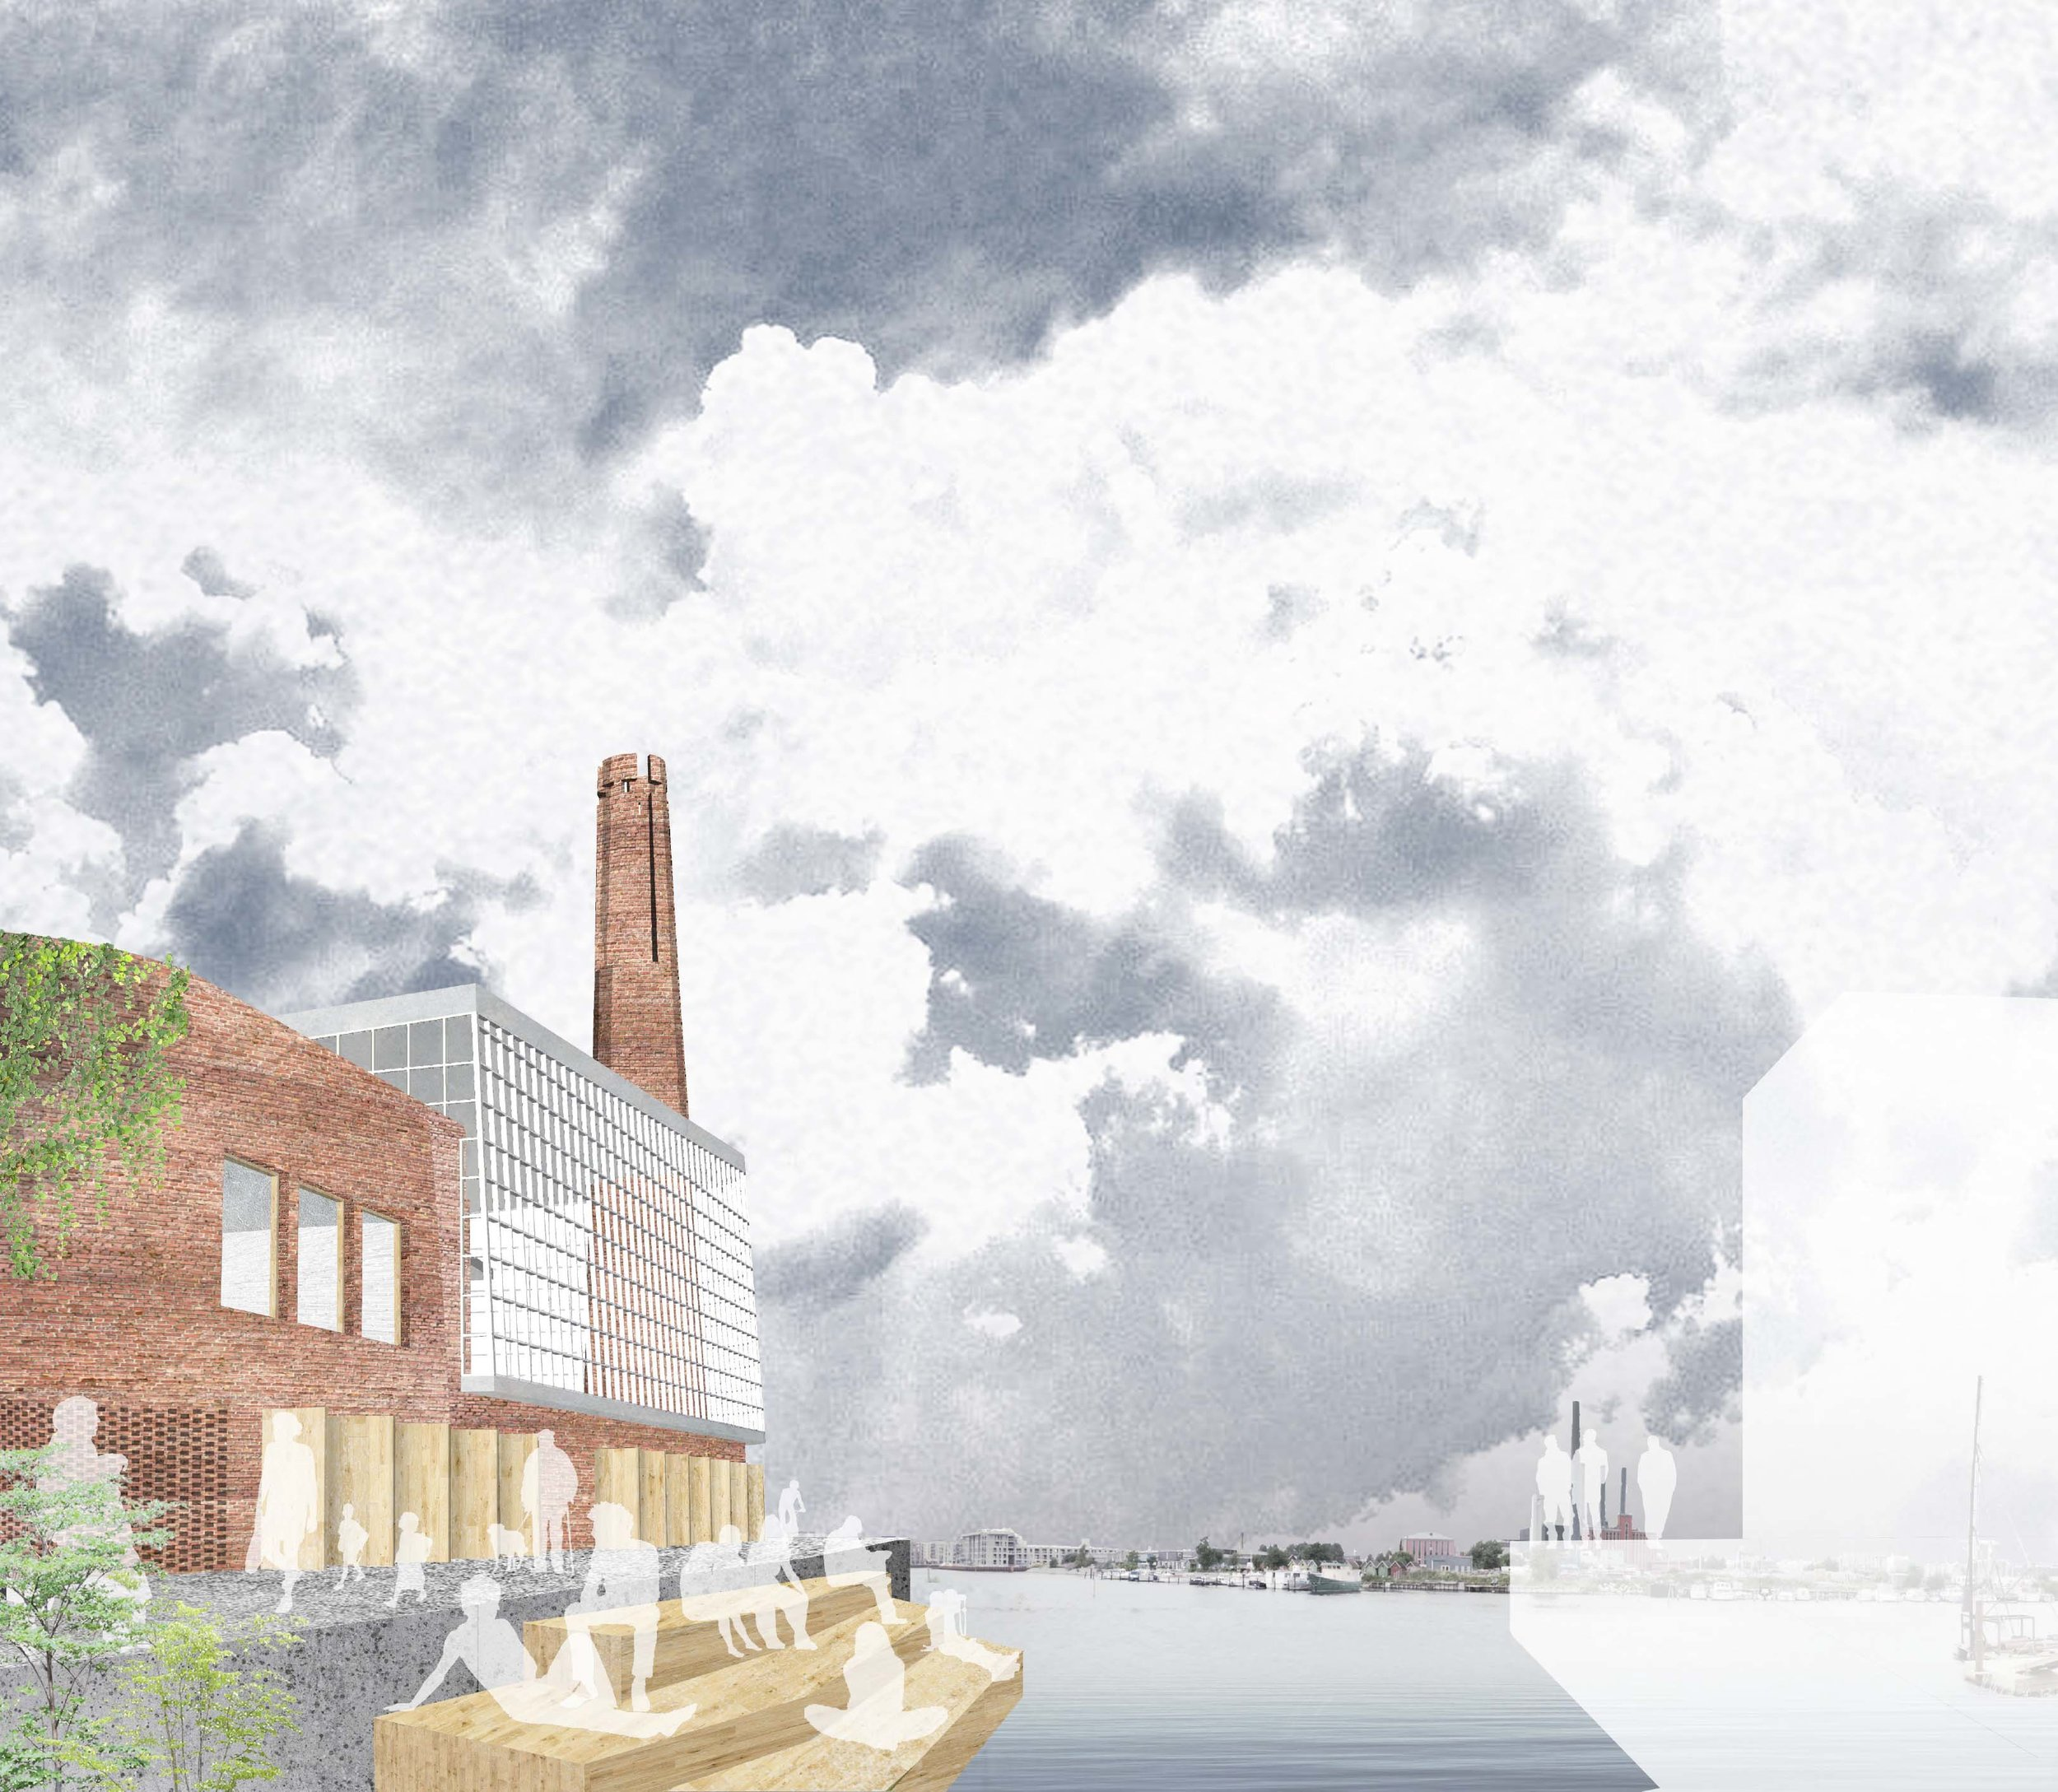 South Harbour Church Visualization from Canal, Megan Blake 2016